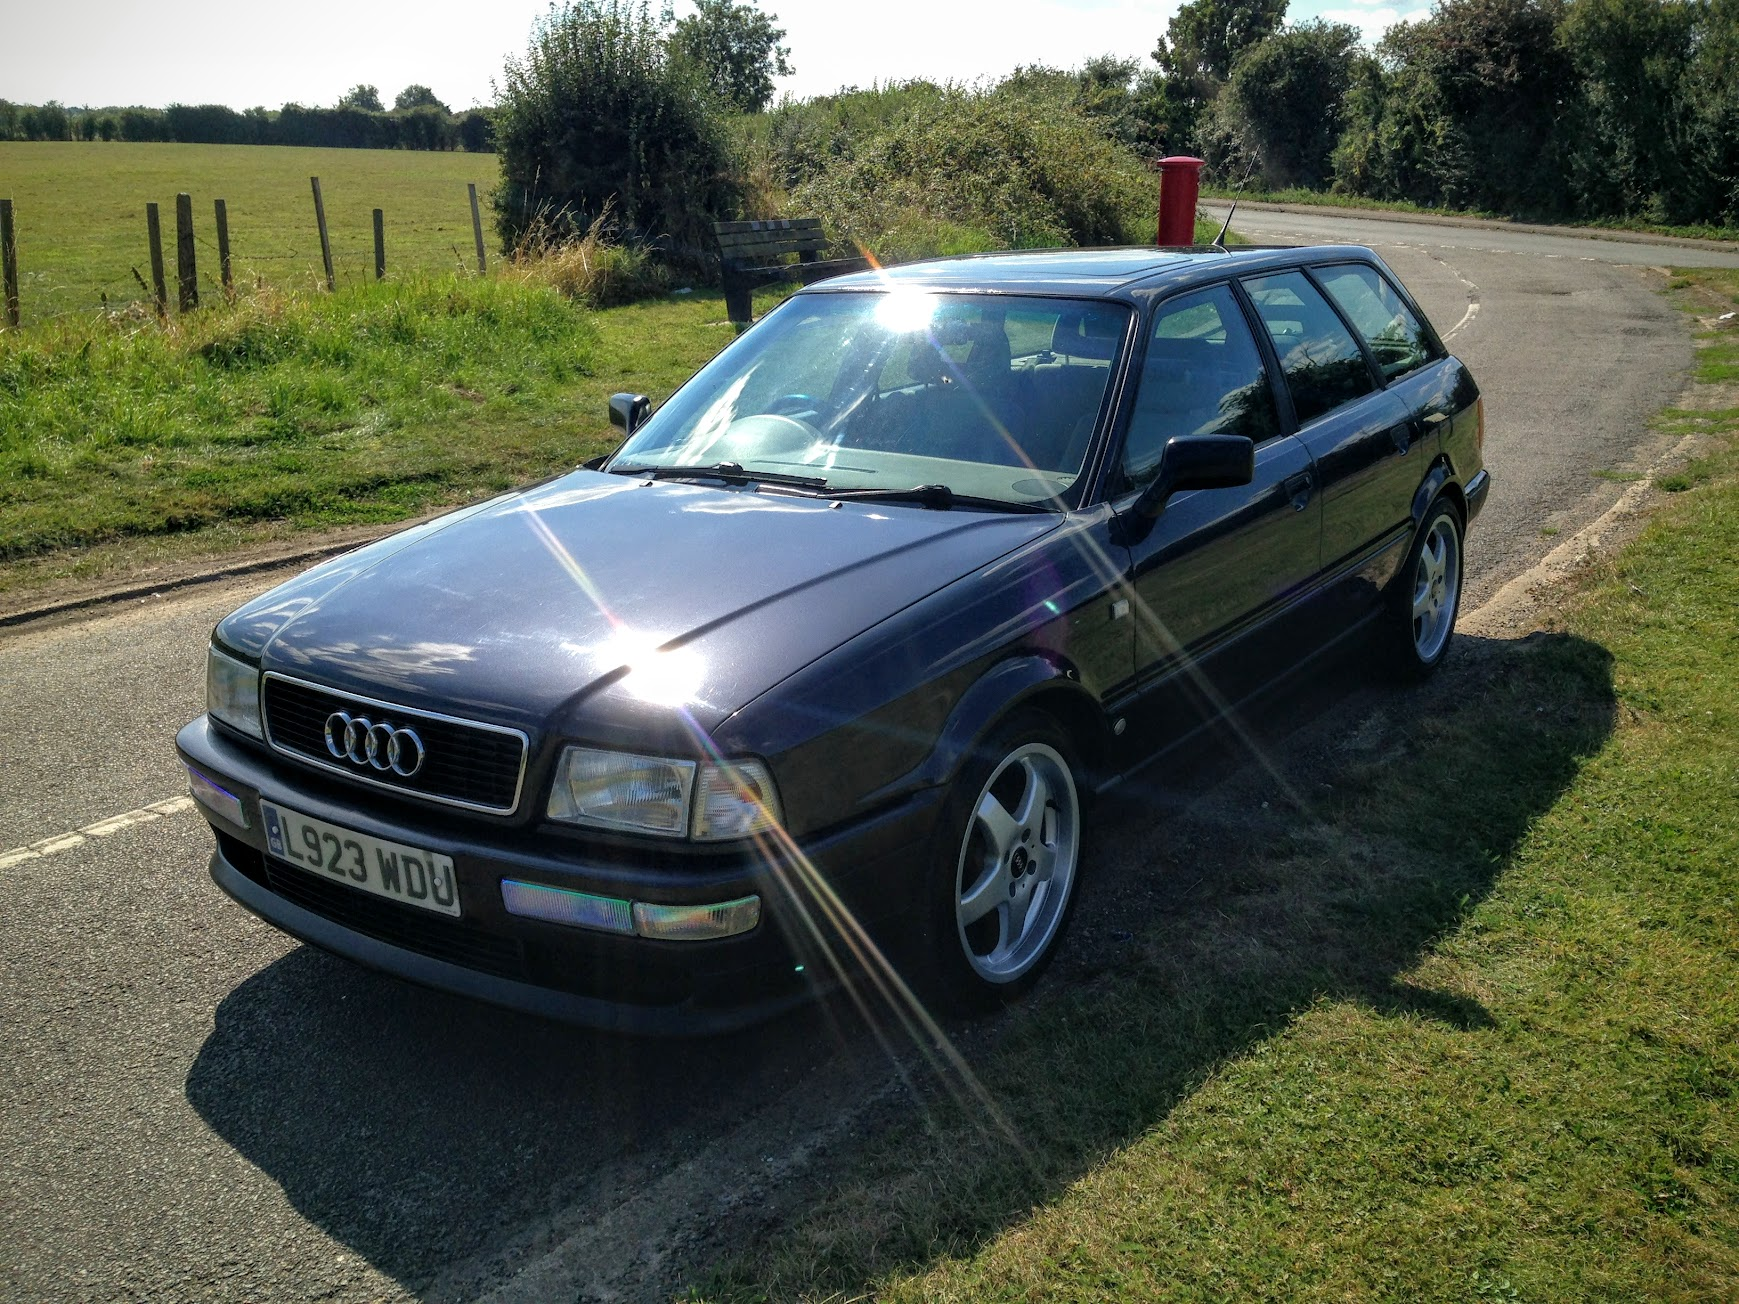 audi 80 avant tdi sold oxfordshire retro rides. Black Bedroom Furniture Sets. Home Design Ideas